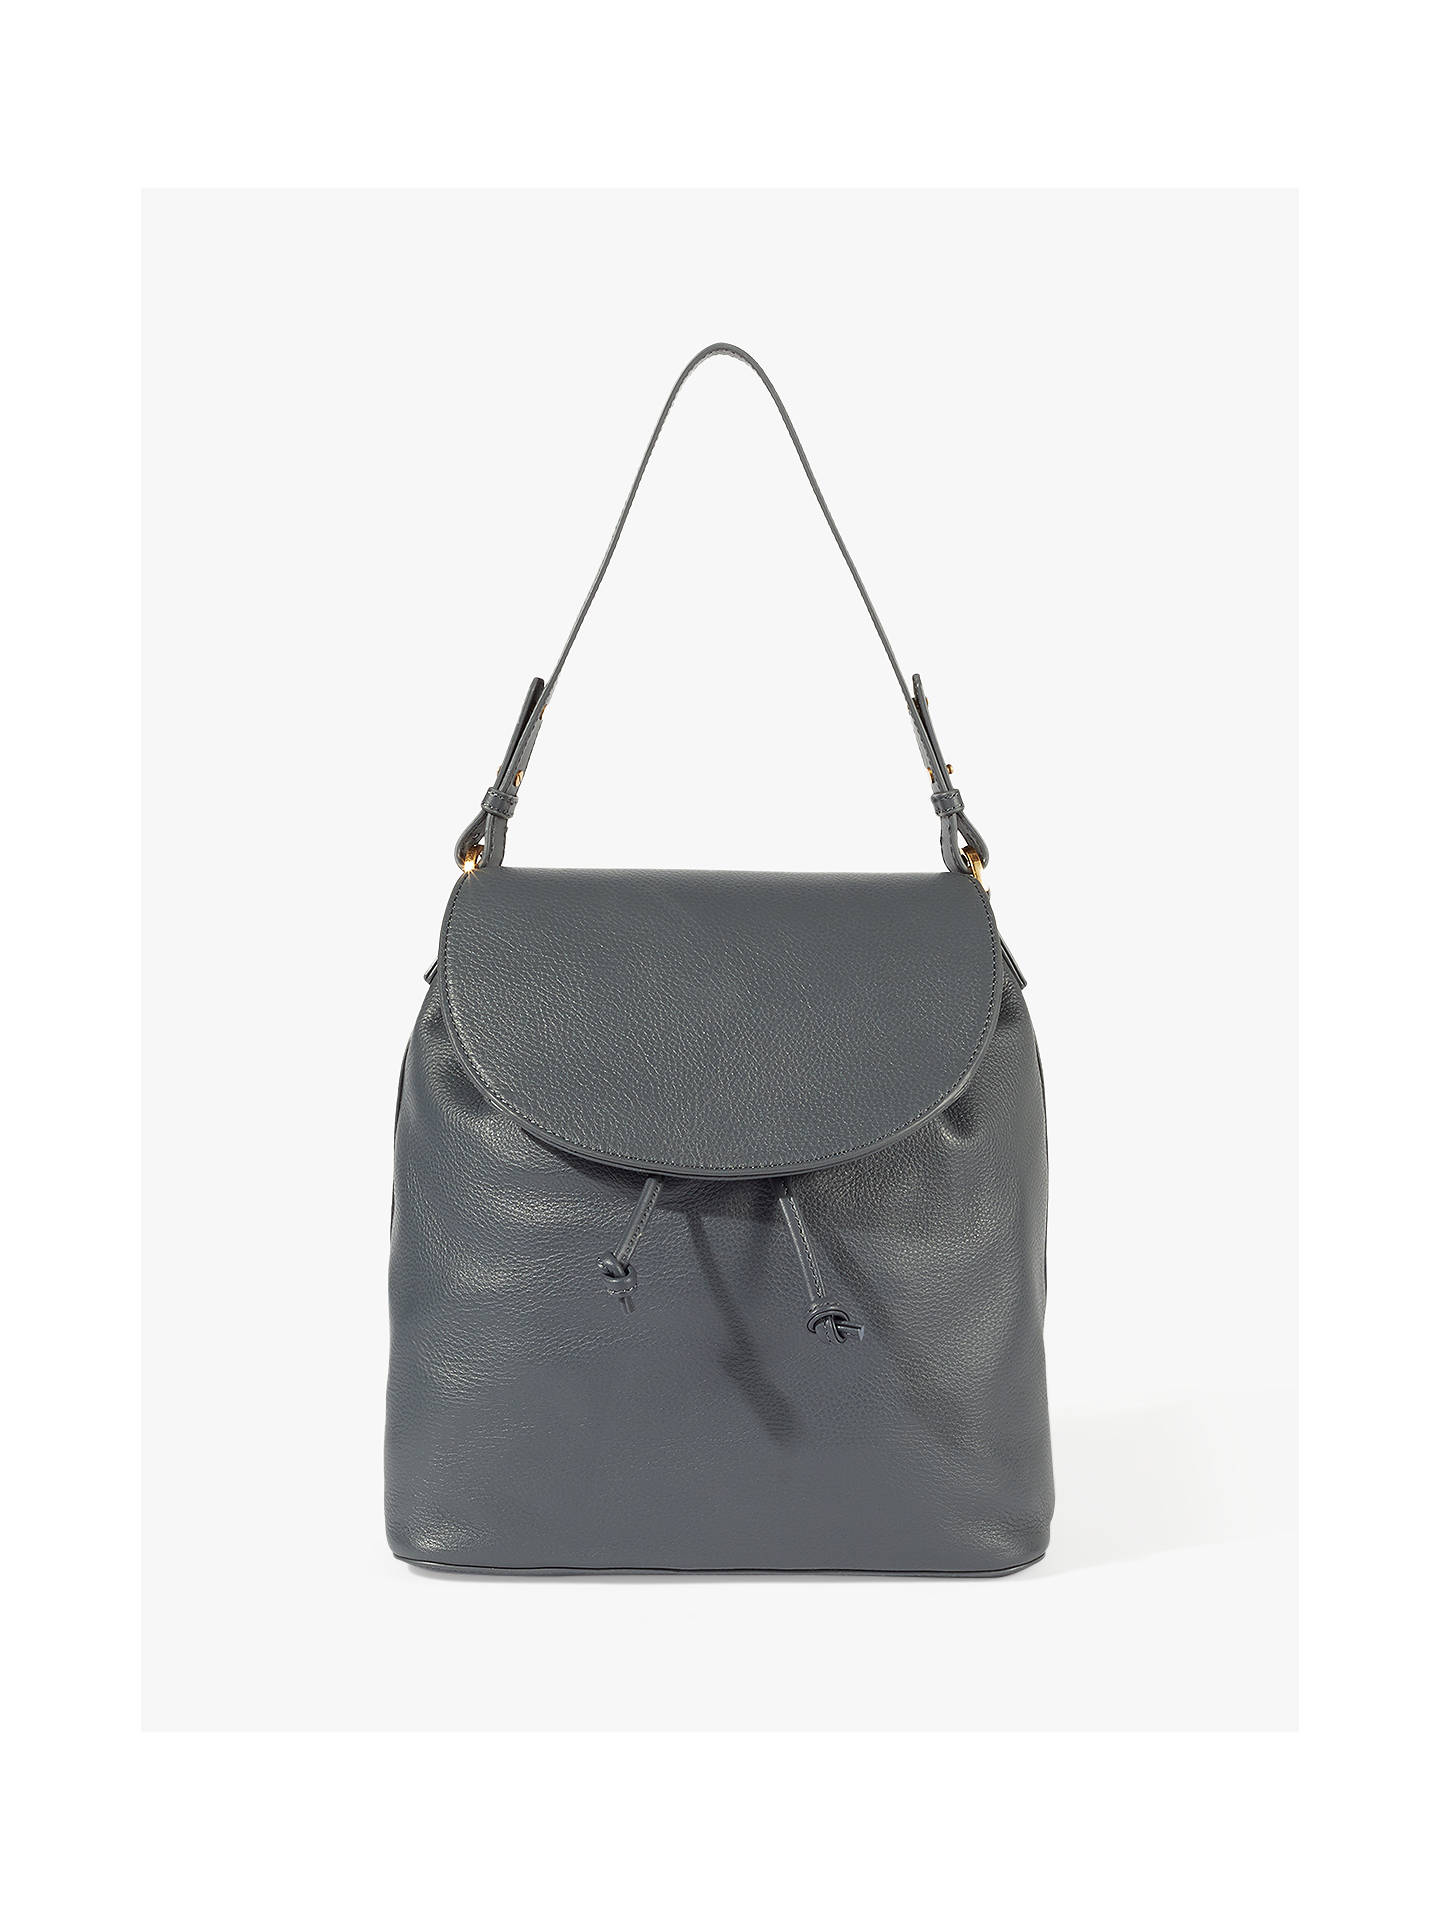 Brook 2 In 1 Leather Bag At John Lewis